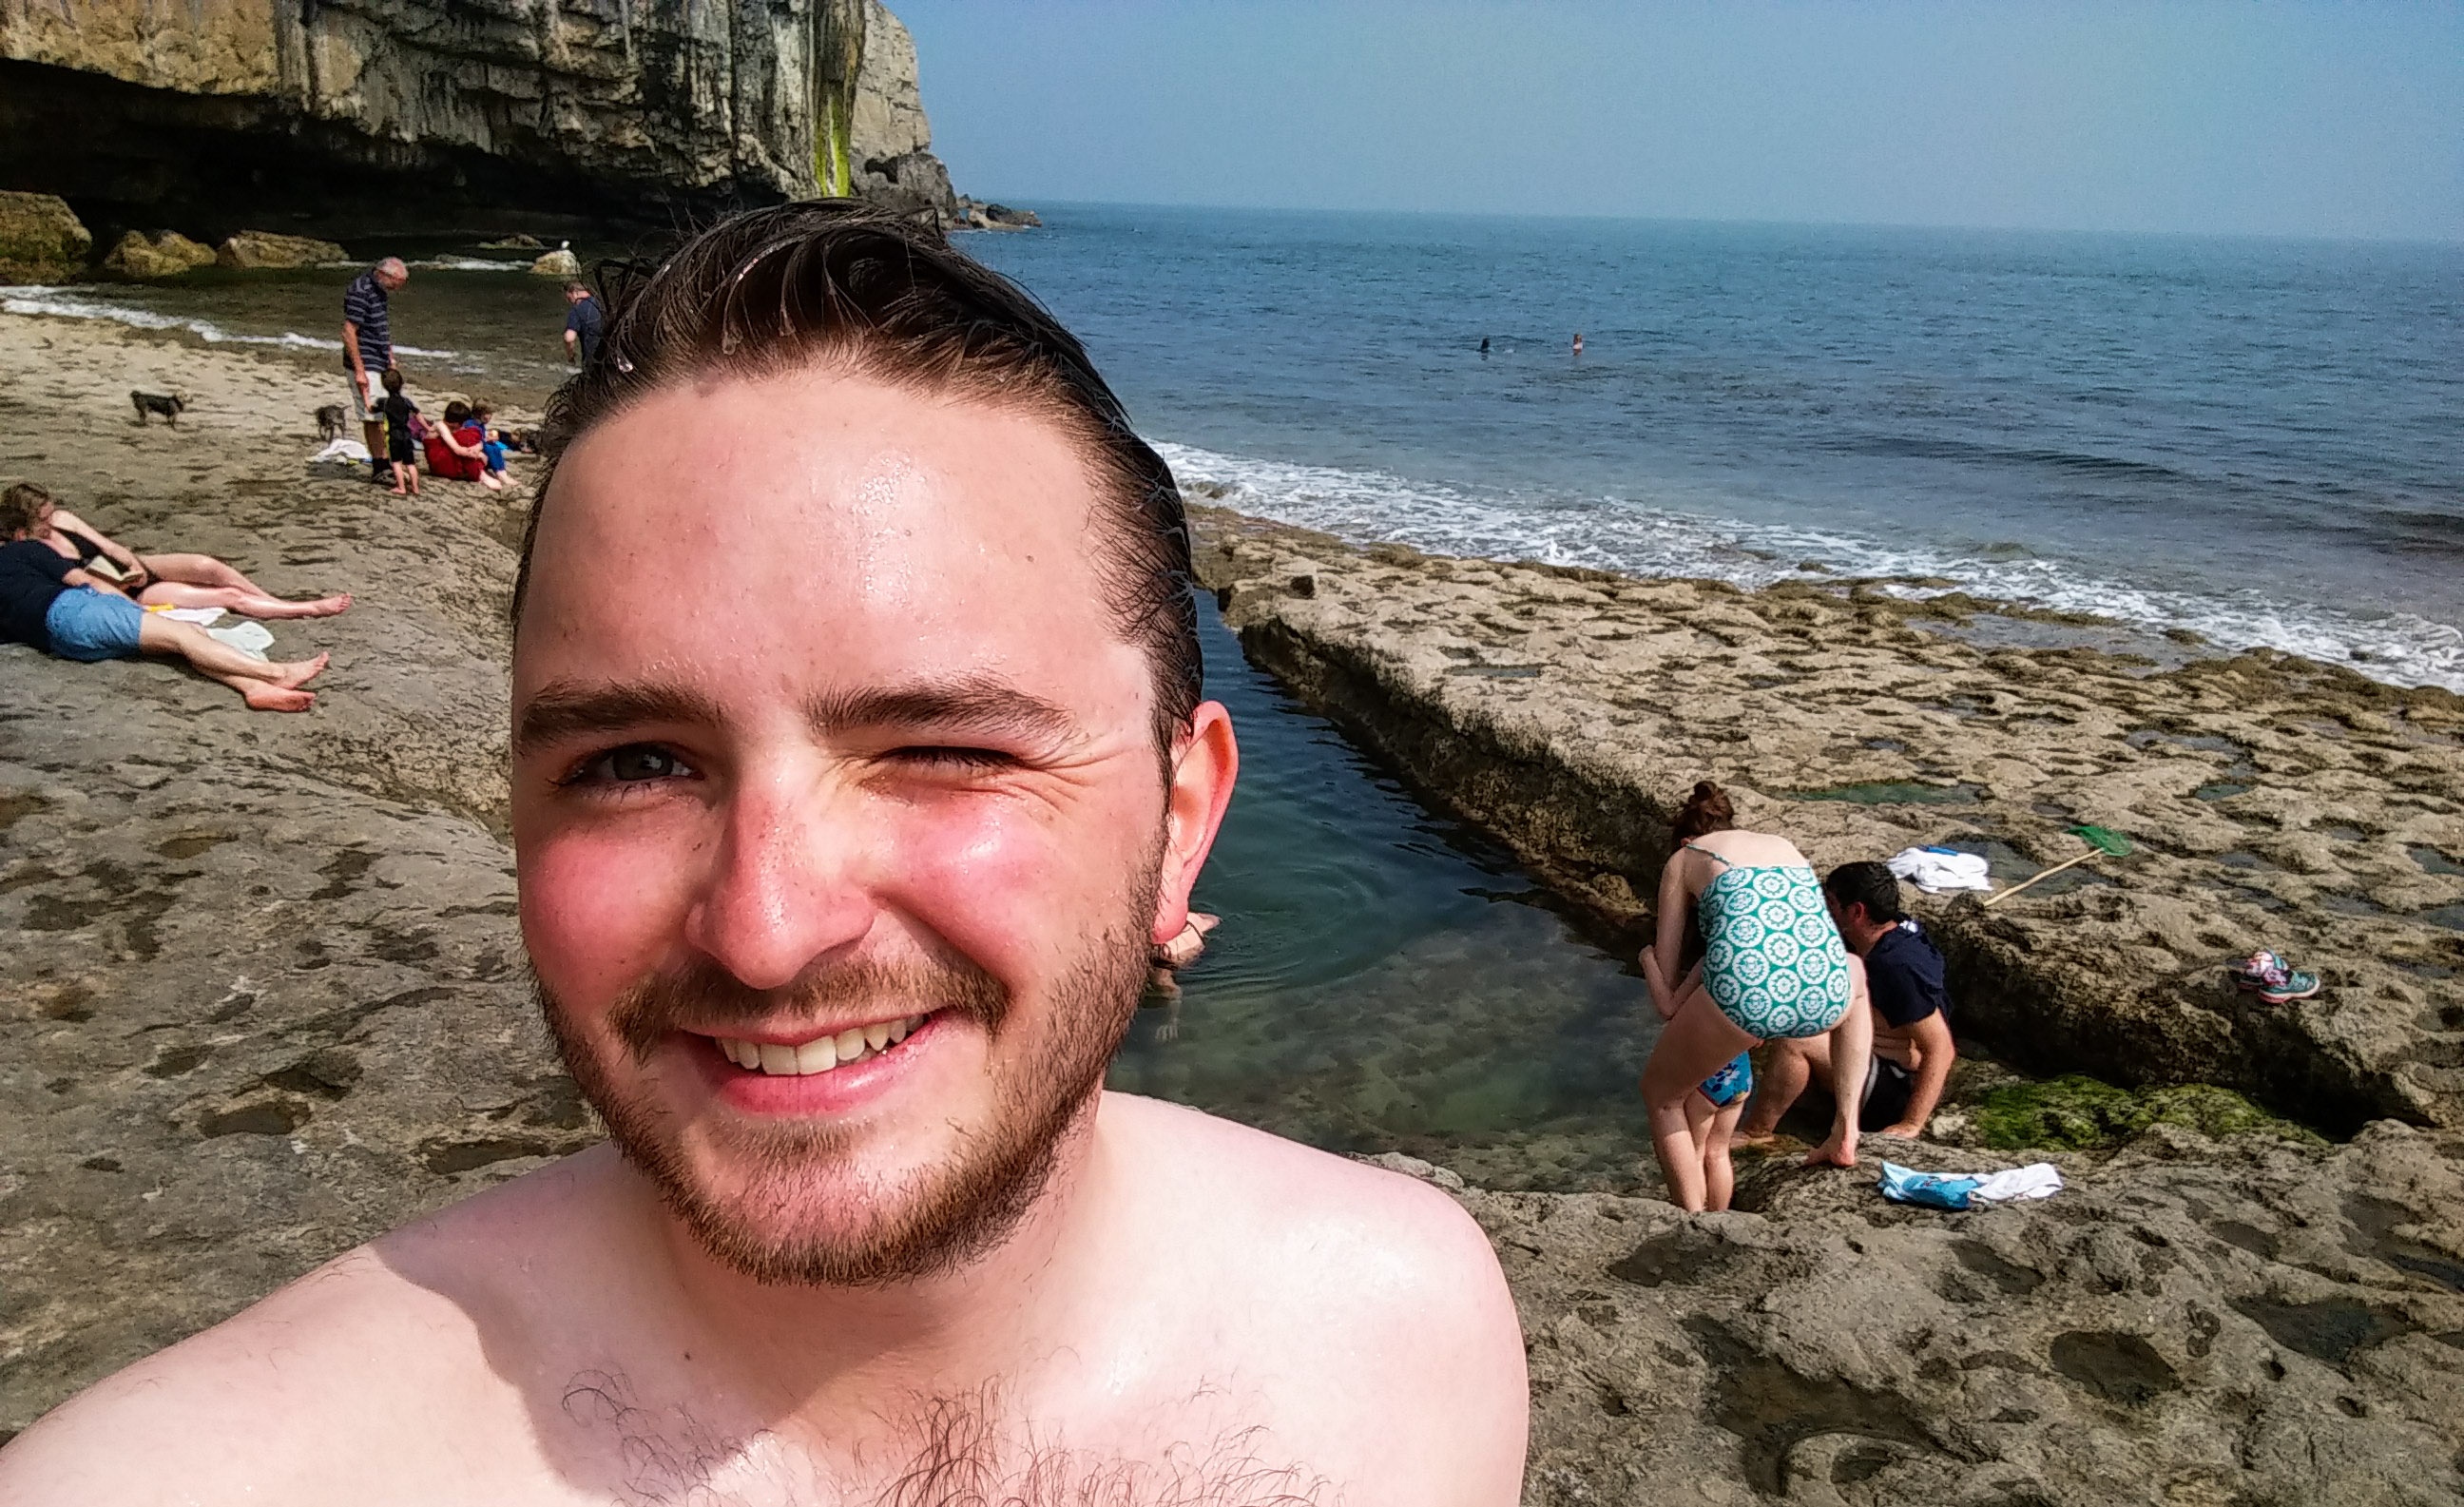 Post-swim selfie #2, this time at Dancing Ledge.